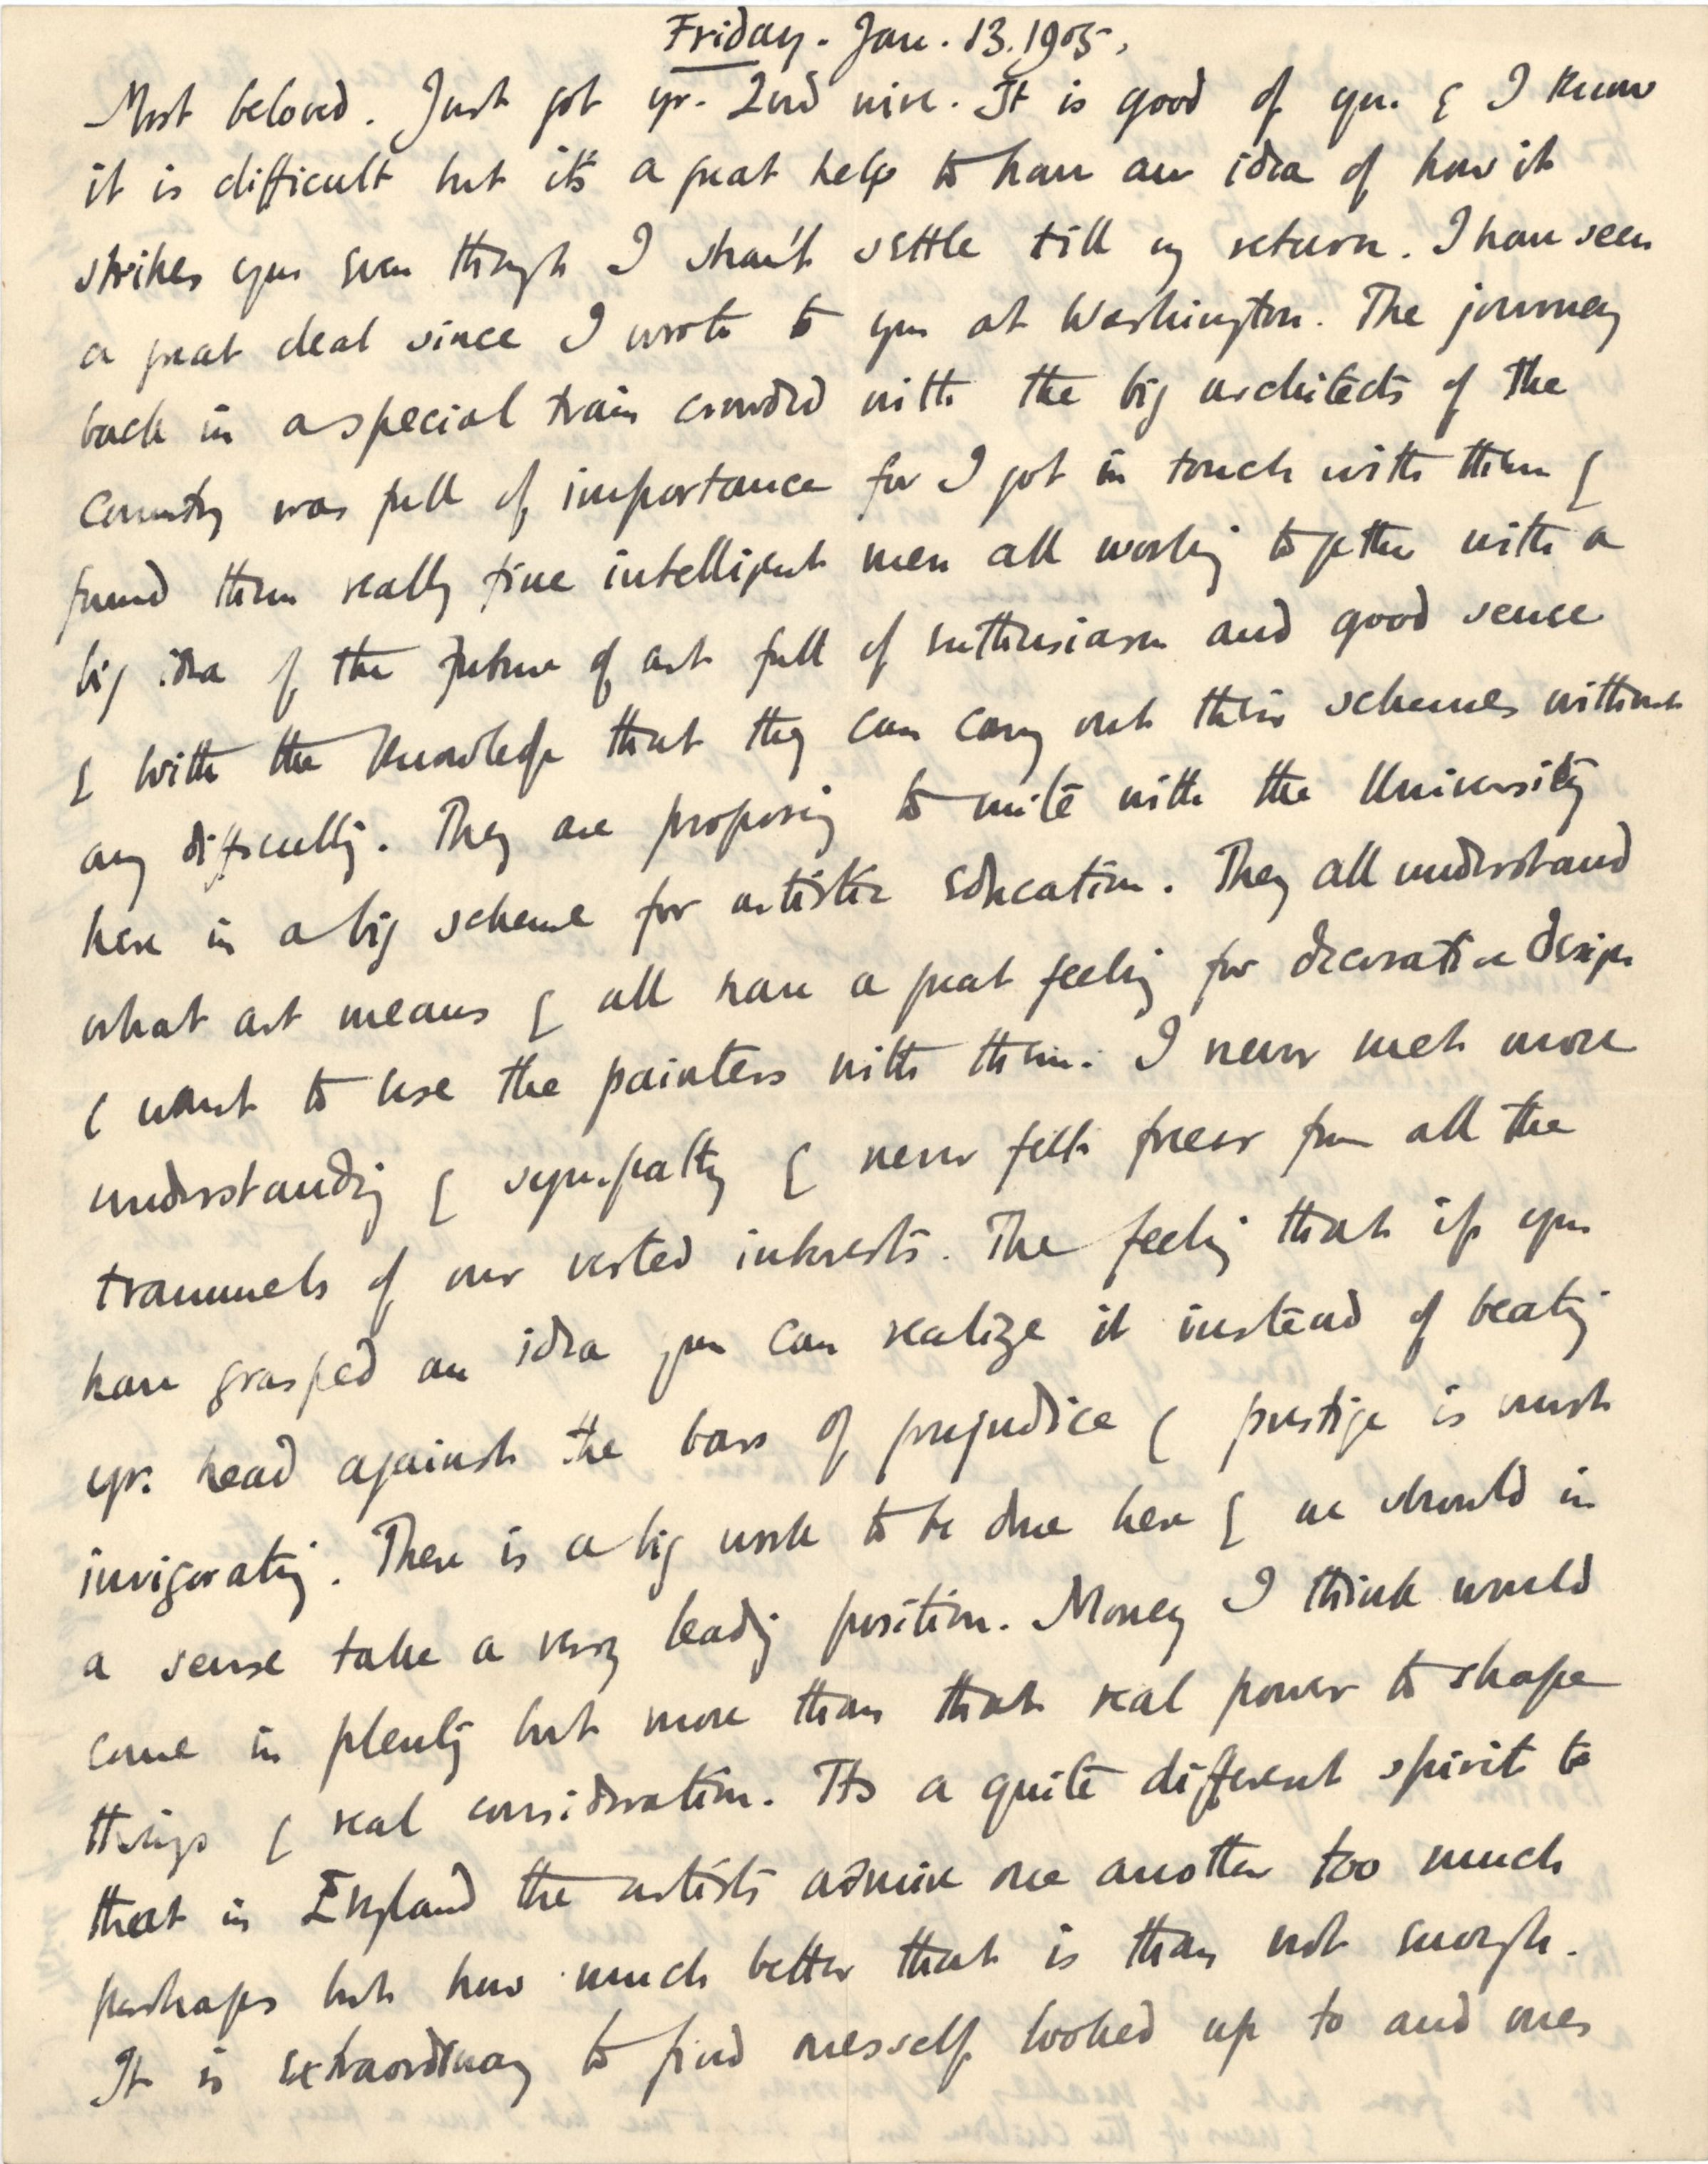 Letter from Roger Fry to Helen Fry, 13 January 1905, expressing excitement about the New York art scene. [REF/3/58/3]